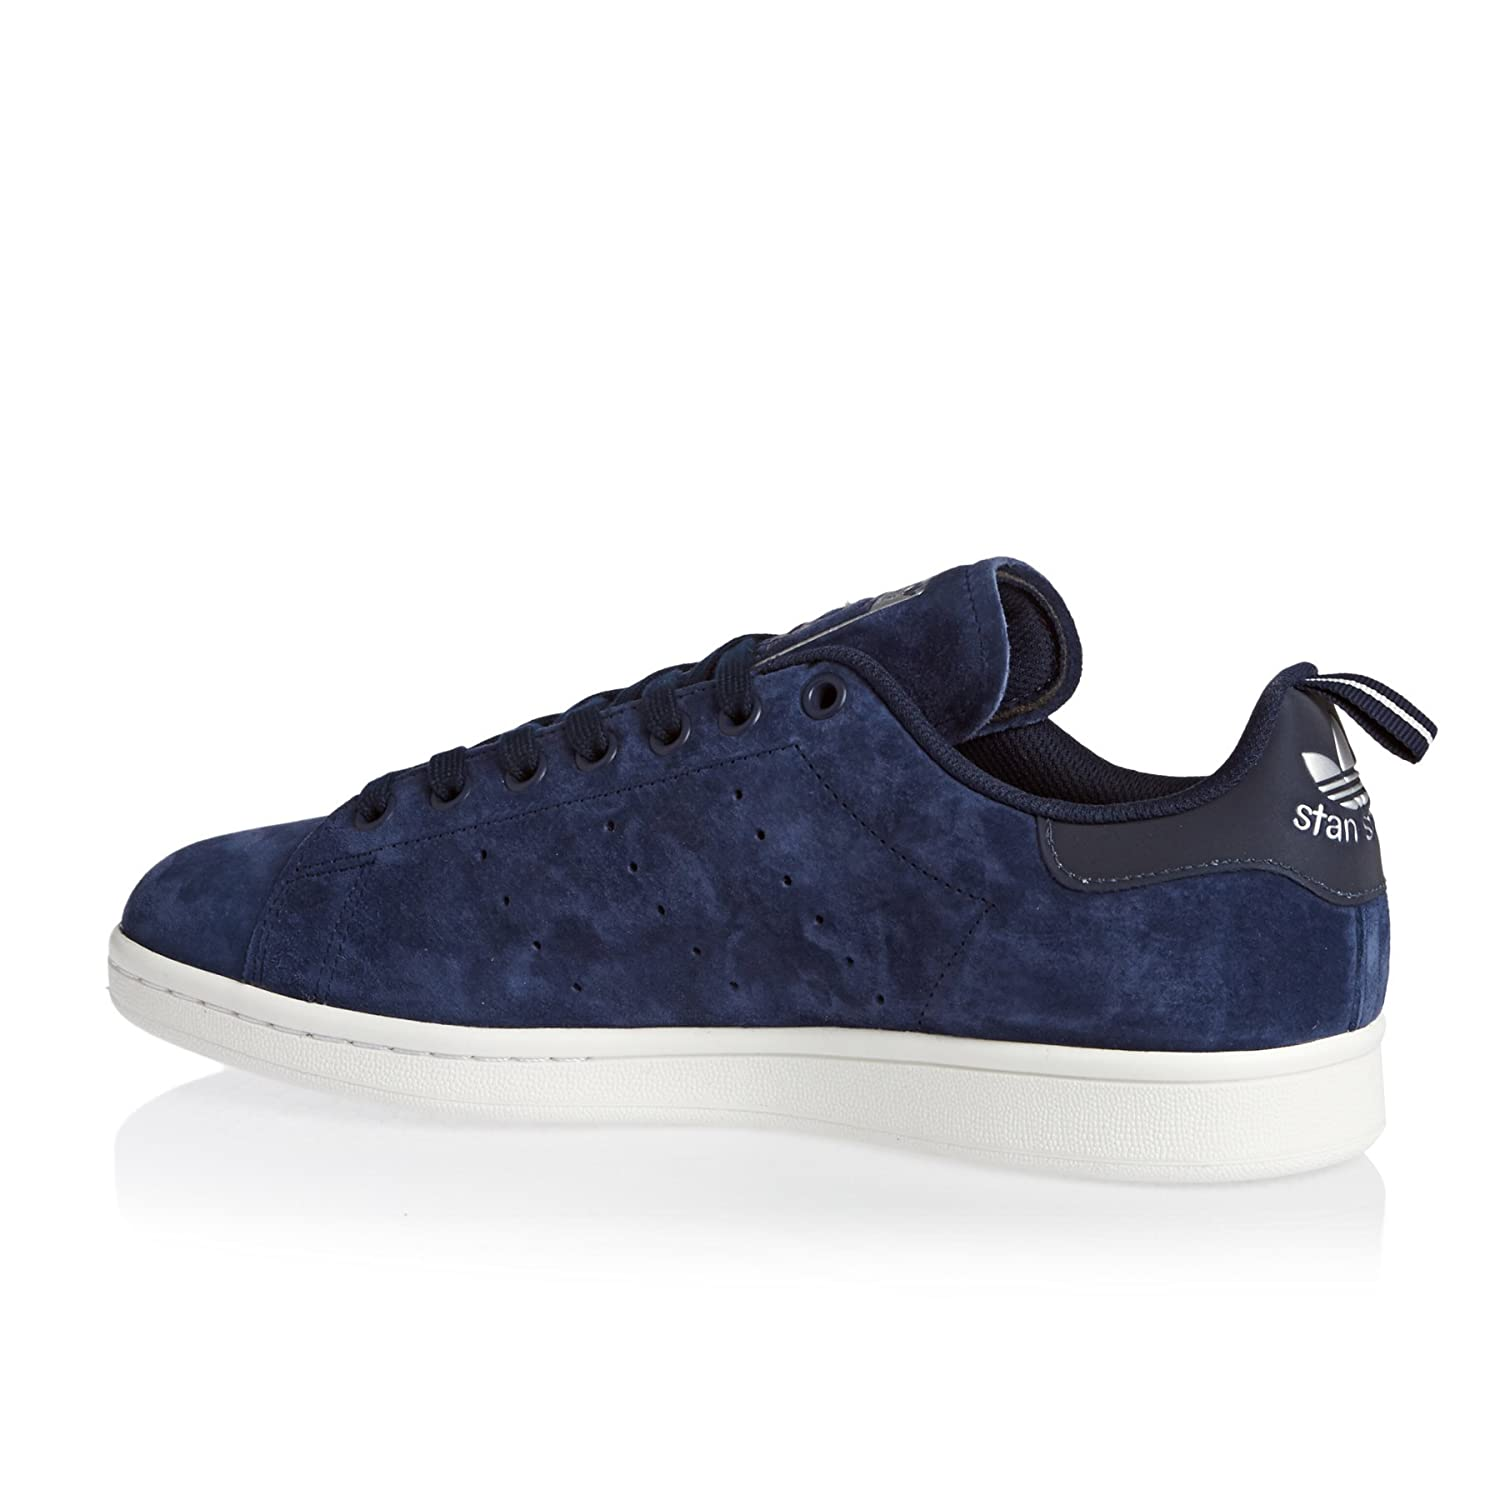 adidas Originals Stan Smith Originals M203, Sneakers Unisex B06WWDR8T5 - Stan Adulto blu bfdea84